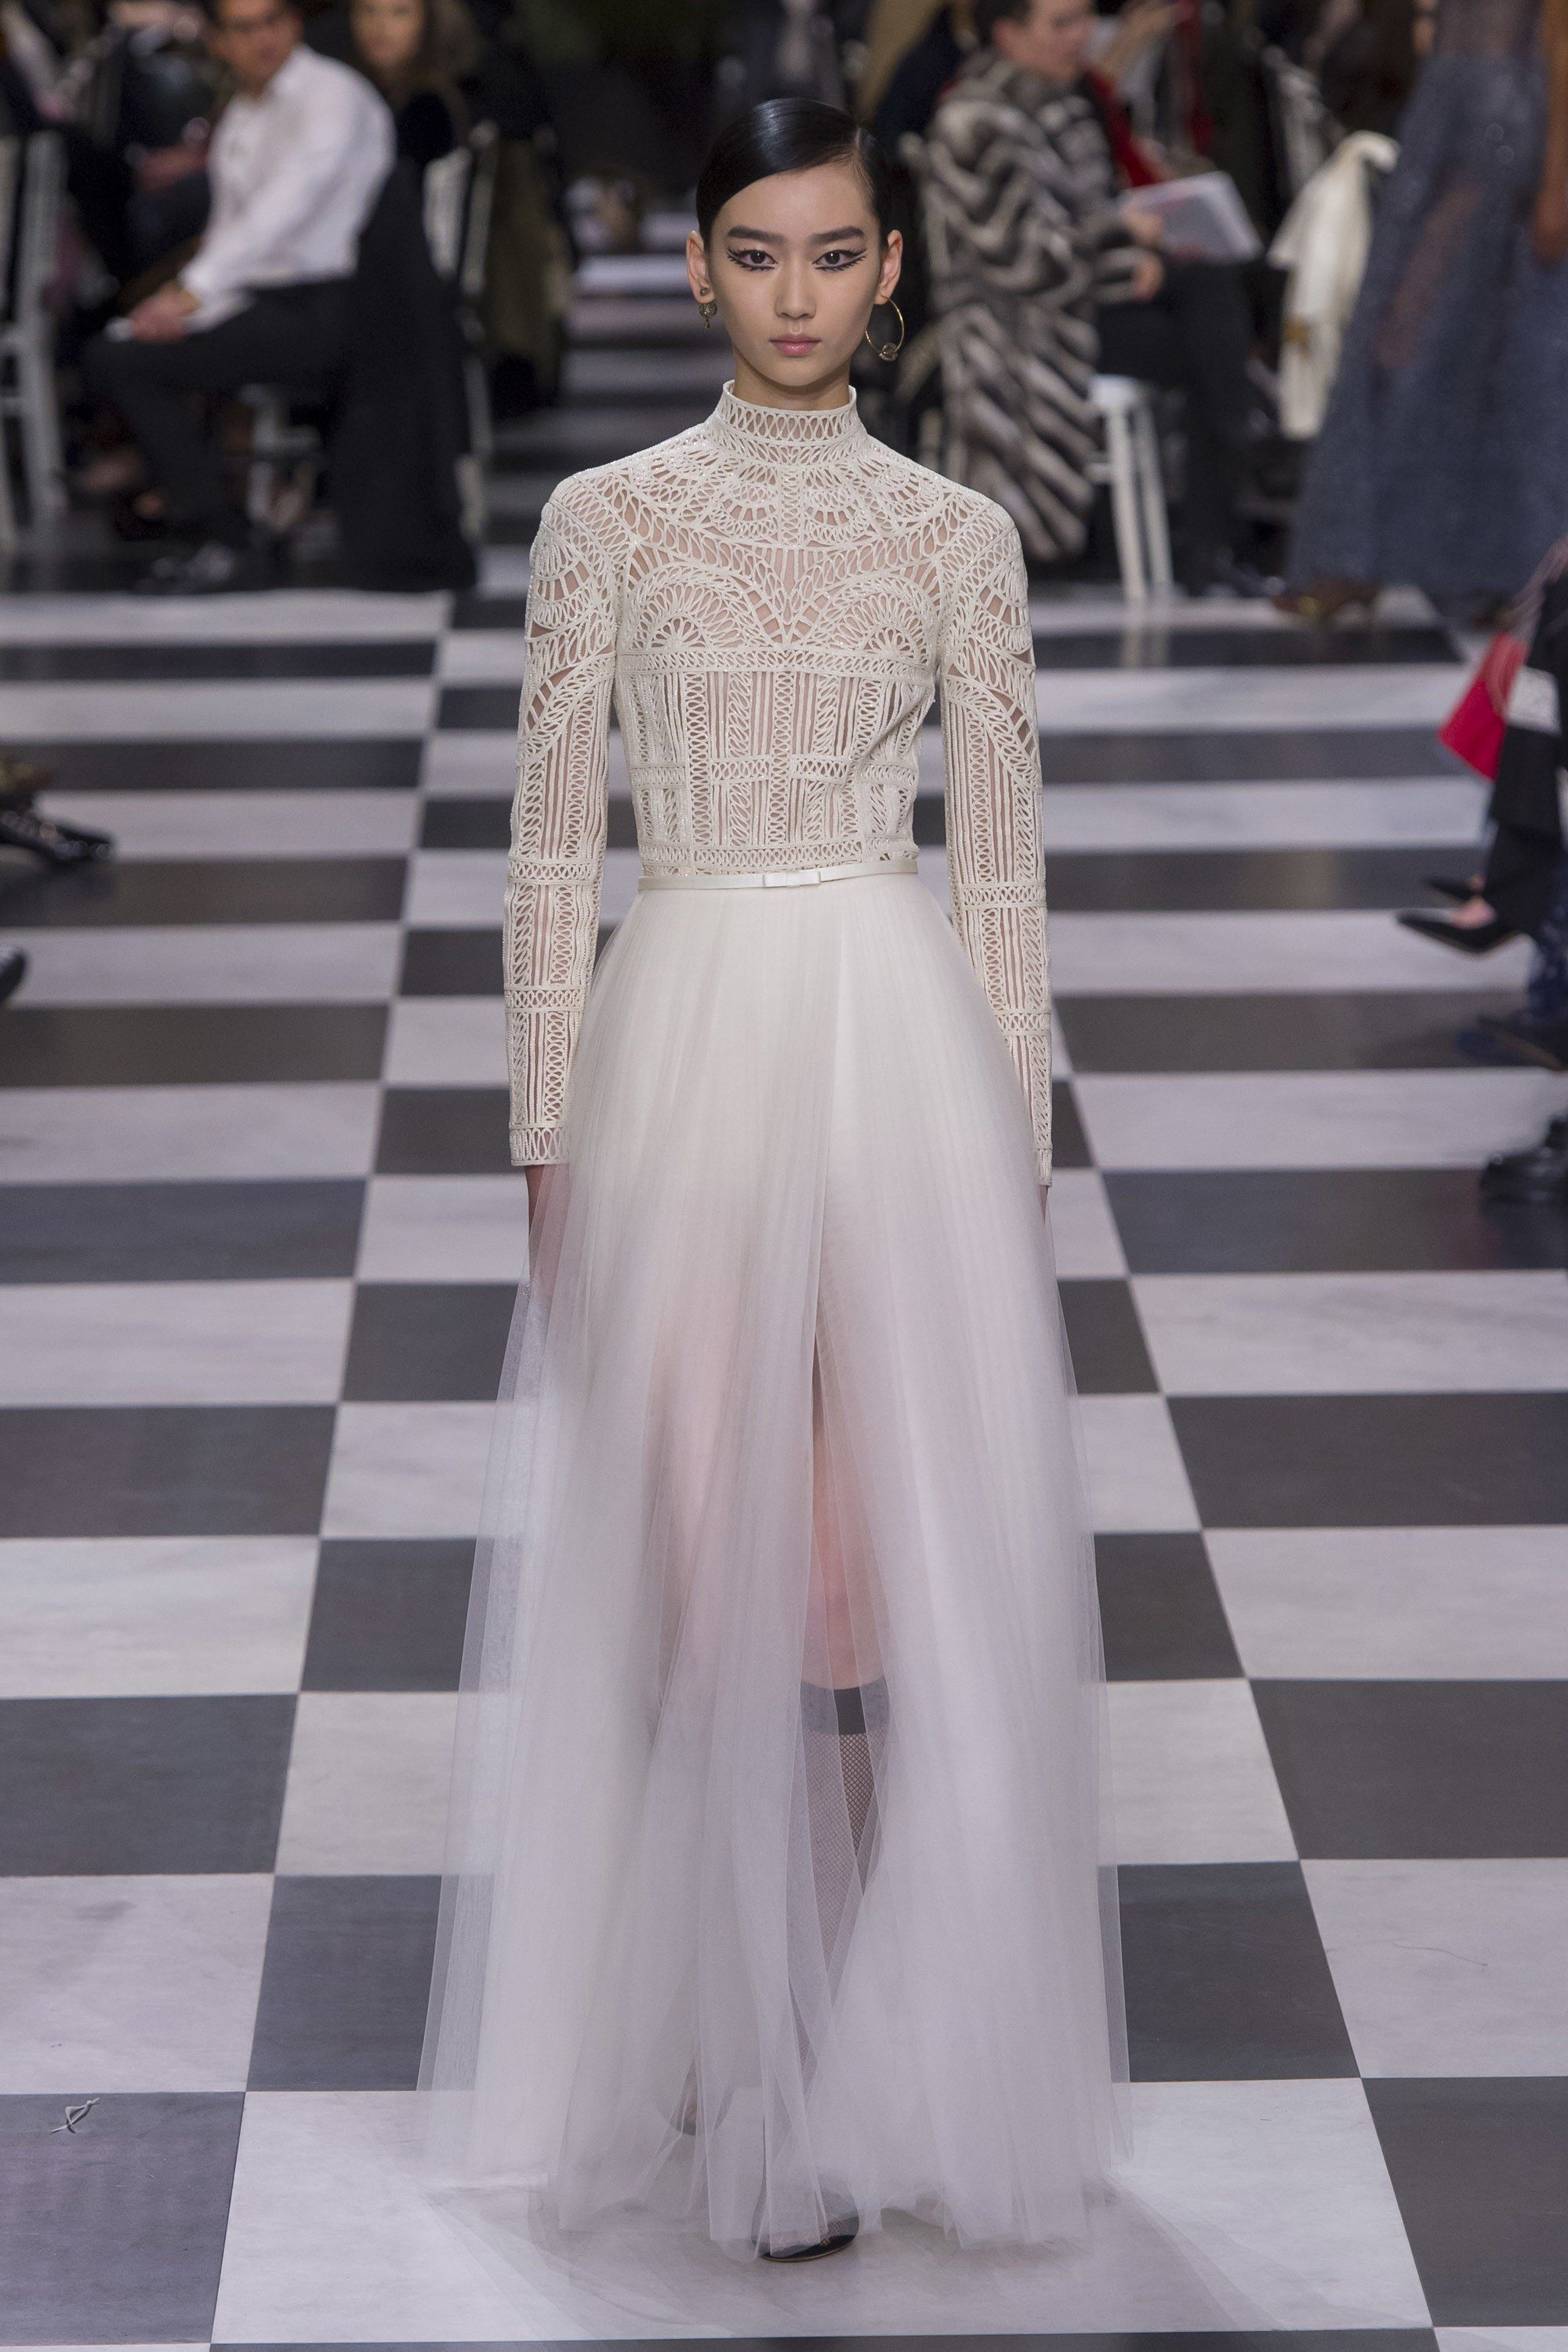 a245ef5408c7f Christian Dior Spring 2018 Couture Collection - Vogue